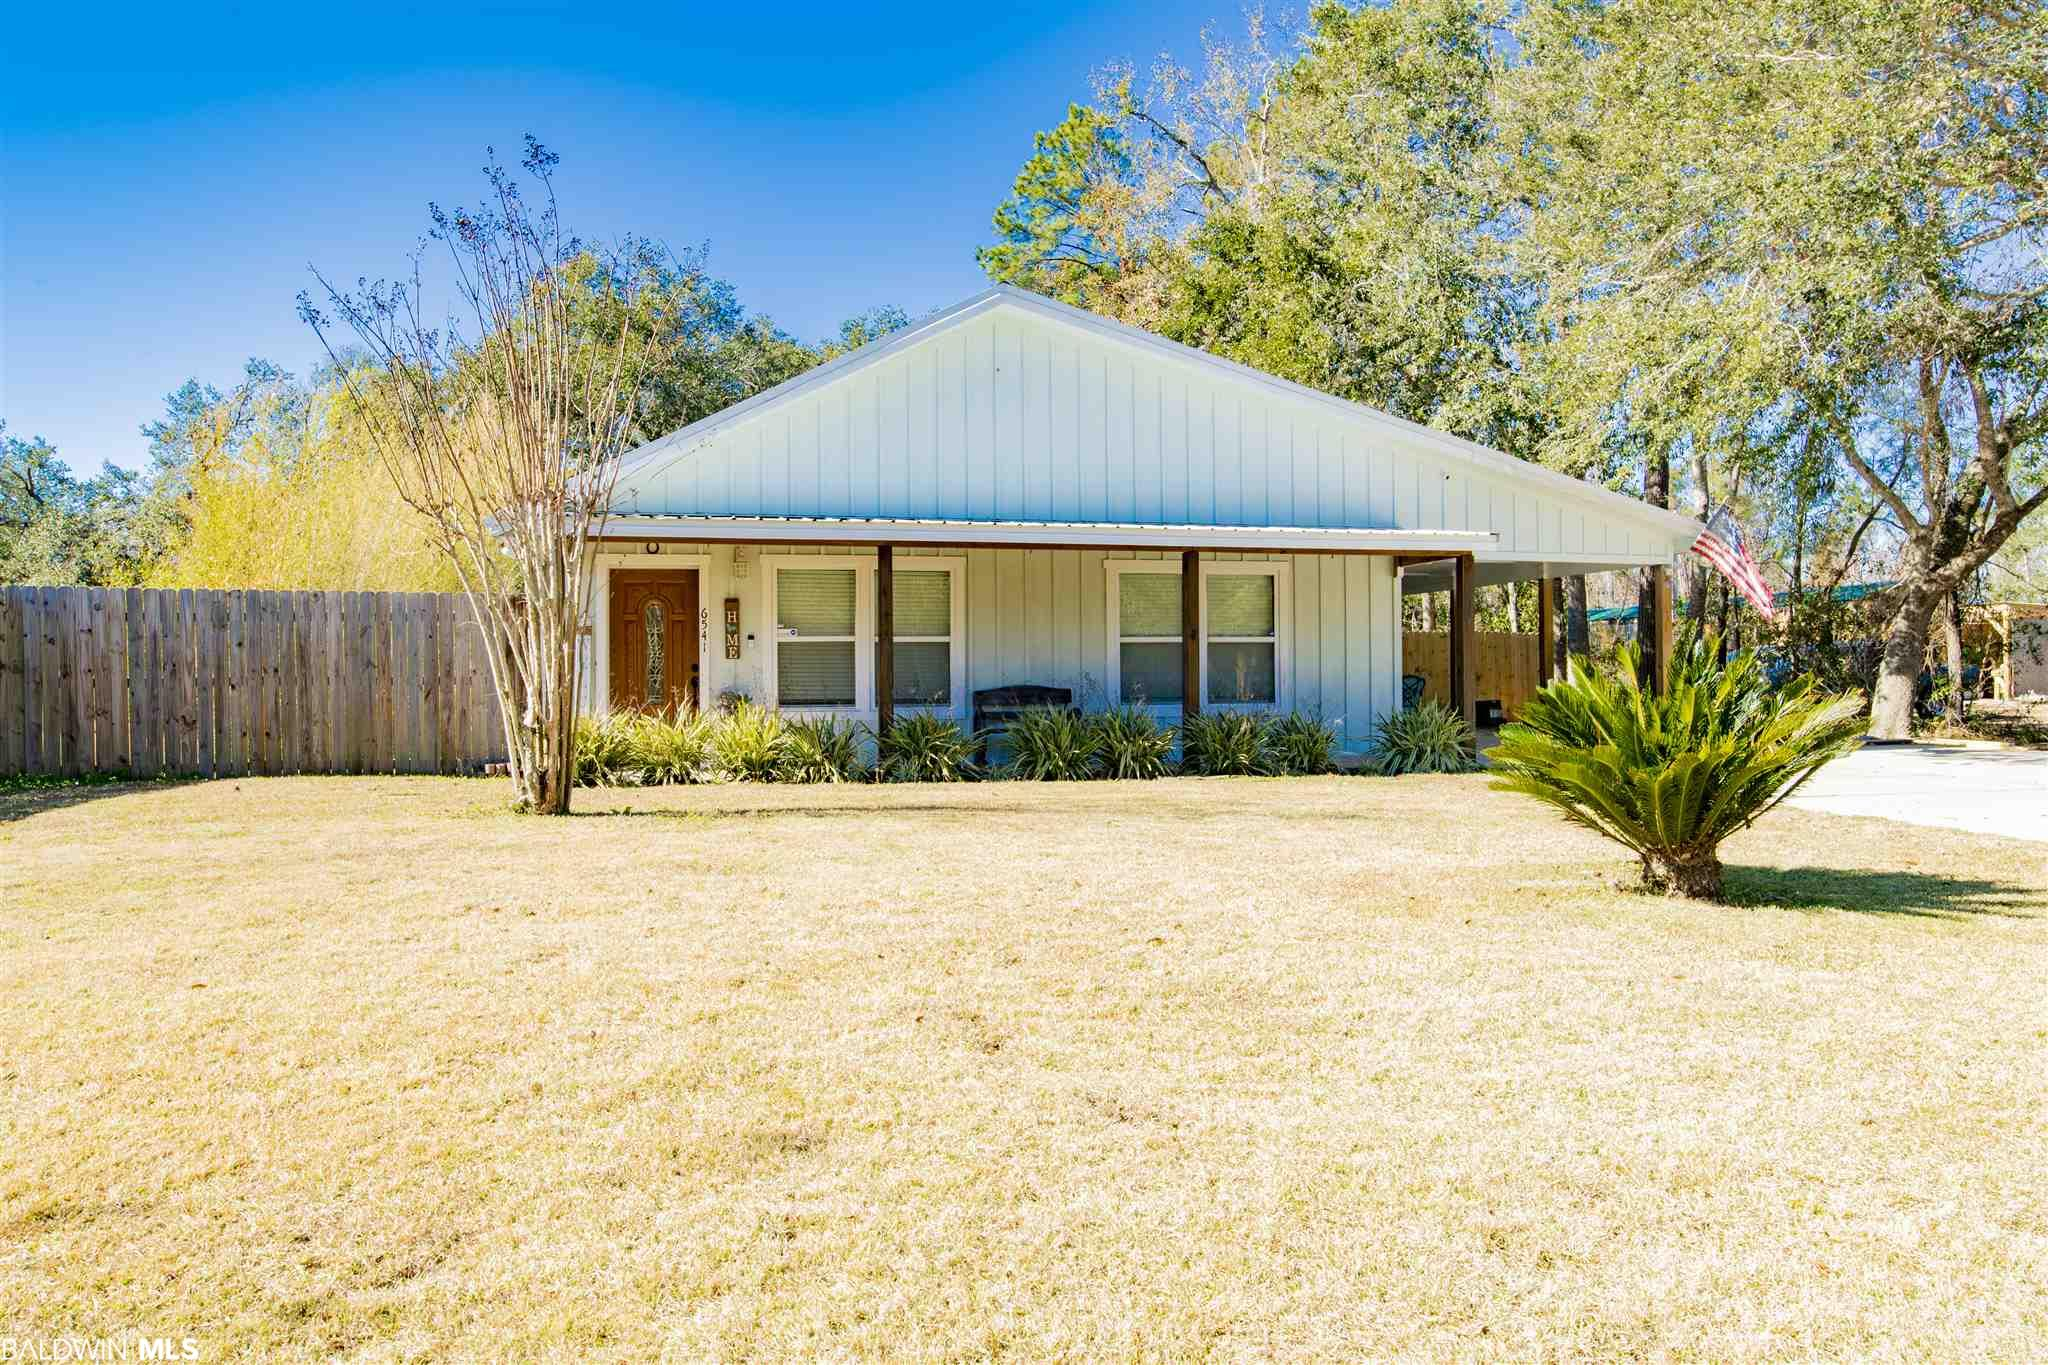 Do not miss out on this precious home in Bon Secour, located just minutes to Tin Top restaurant. Quiet country setting just minutes to Foley and Gulf Shores. This Spacious 2 bedroom, 2 bathroom home has new flooring, and a kitchen that features granite counter tops with stainless steel appliances.  The BIG fenced in yard is half an acre with a storage building AND a workshop connected to the back of the home.